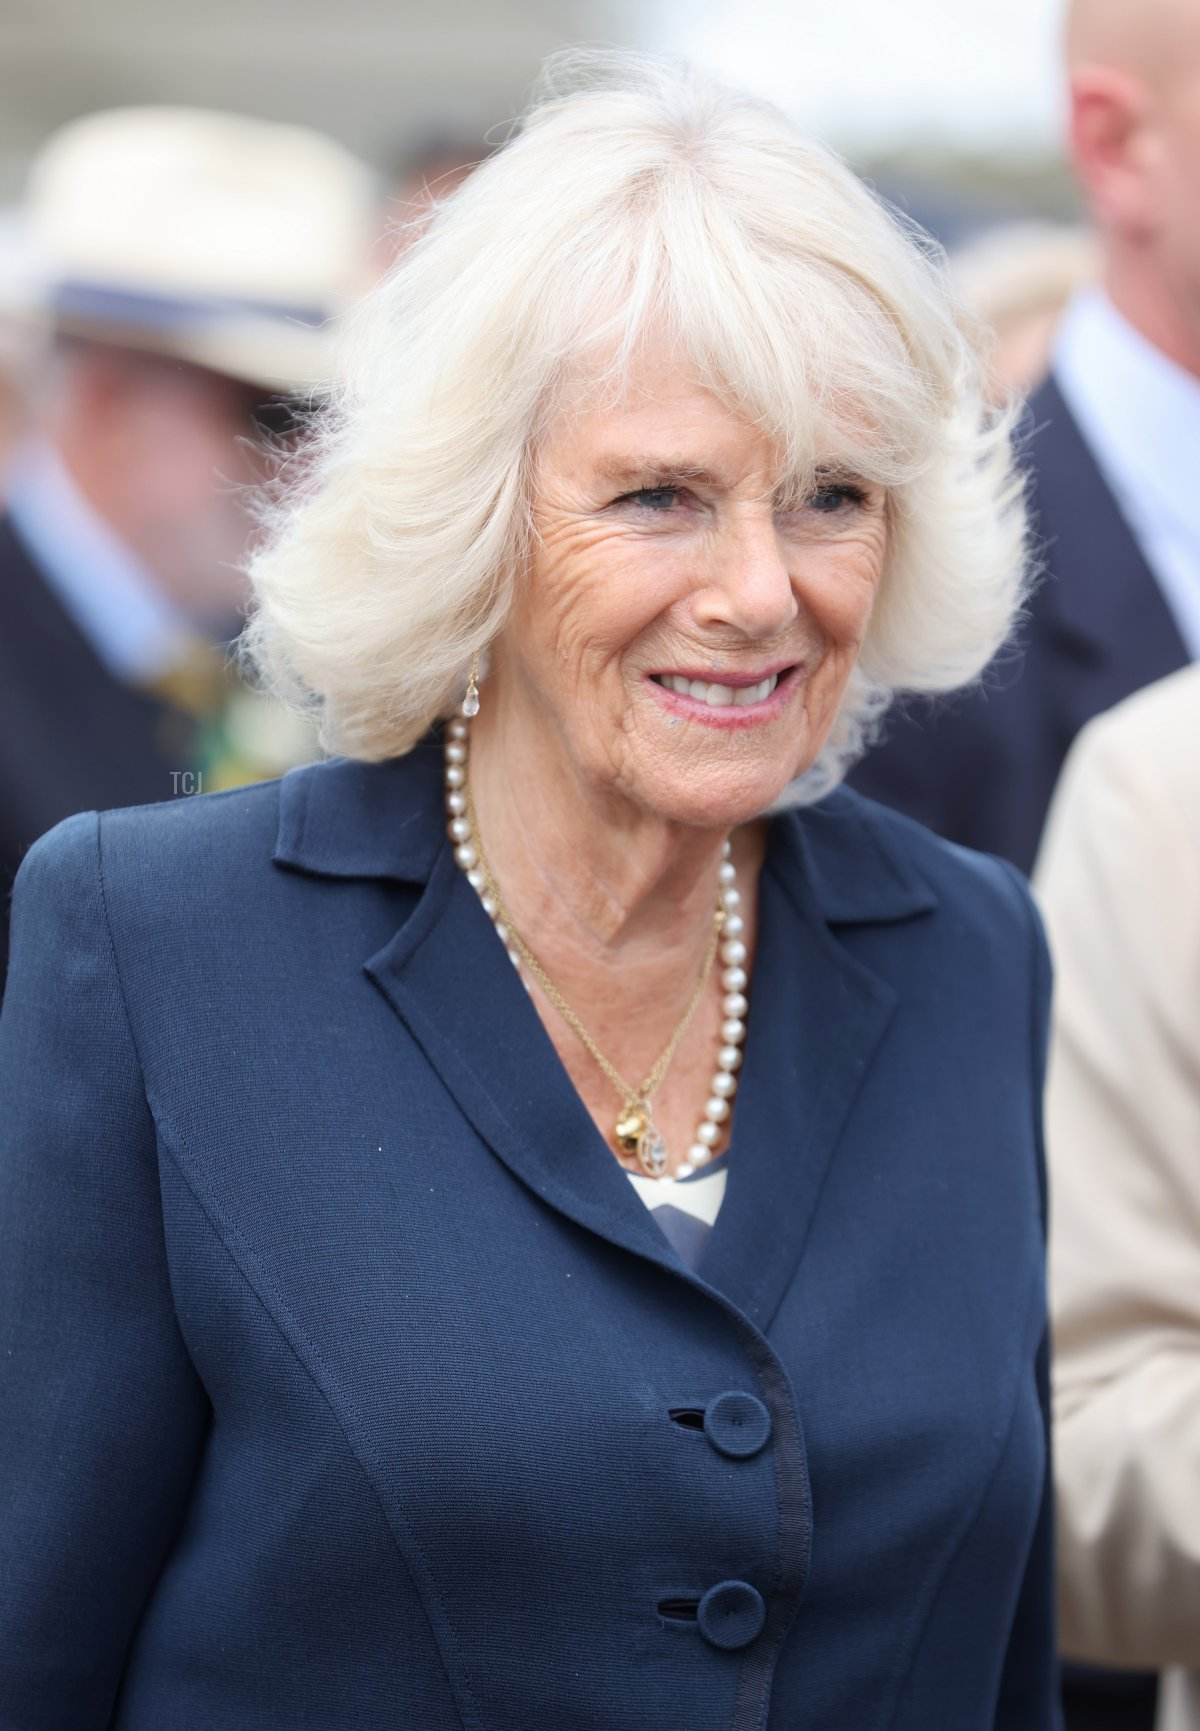 Camilla, Duchess of Cornwall smiles during her visit to The Great Yorkshire Show on July 15, 2021 in Harrogate, England